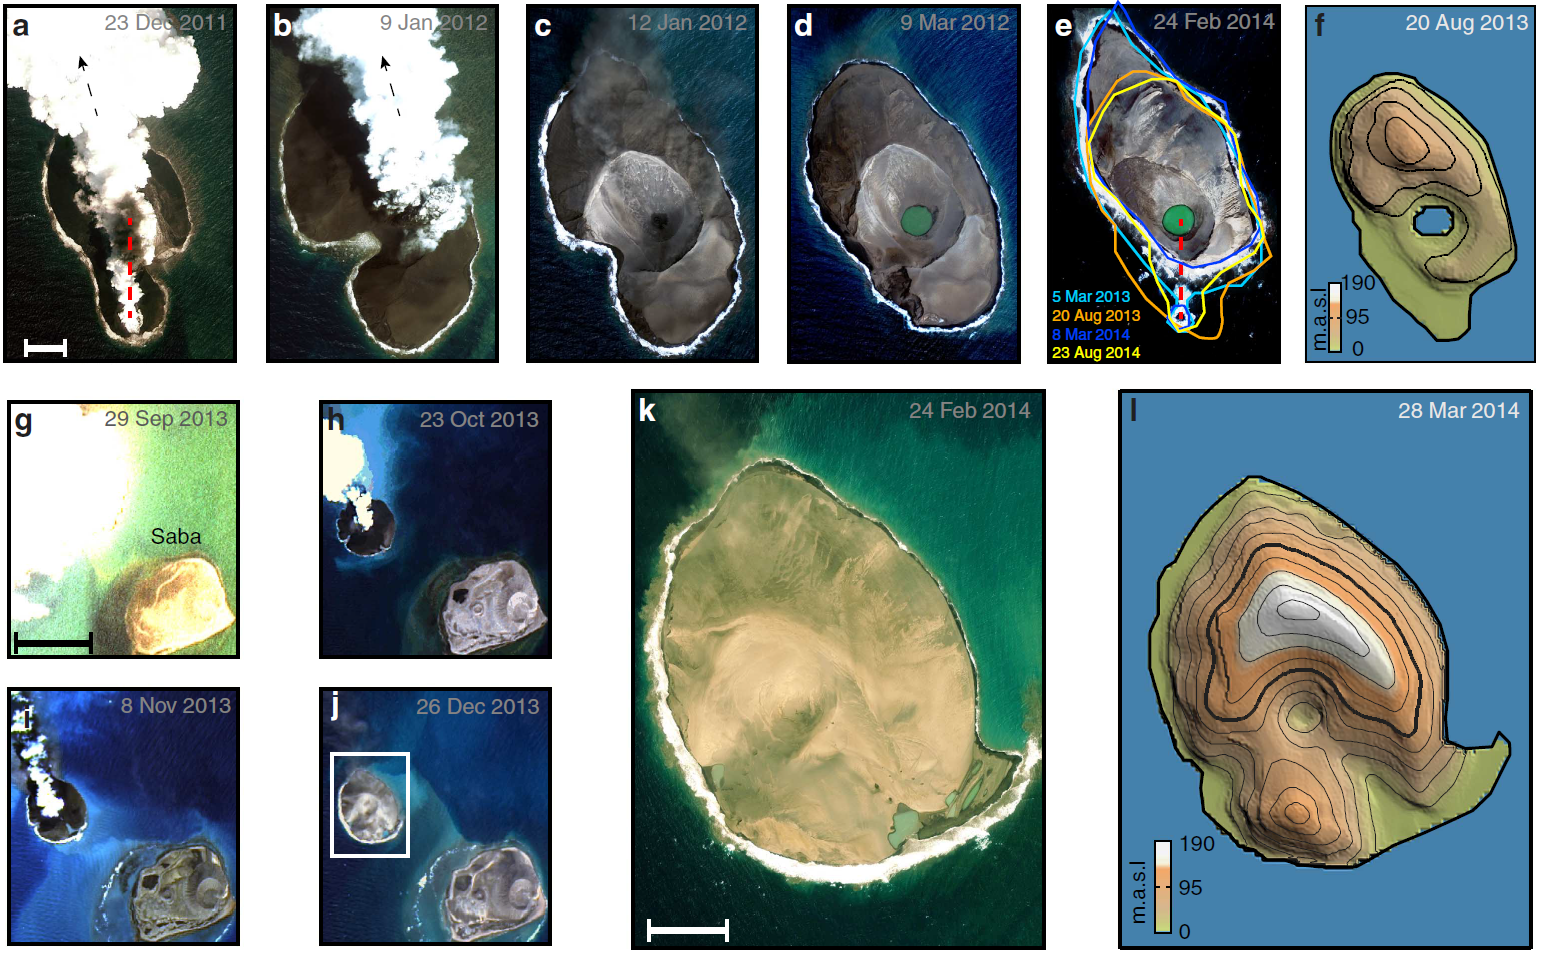 The top row of images shows the evolution of Sholan Island, while the lower images are of Jadid Island. The right-most images show elevation in meters above sea level.